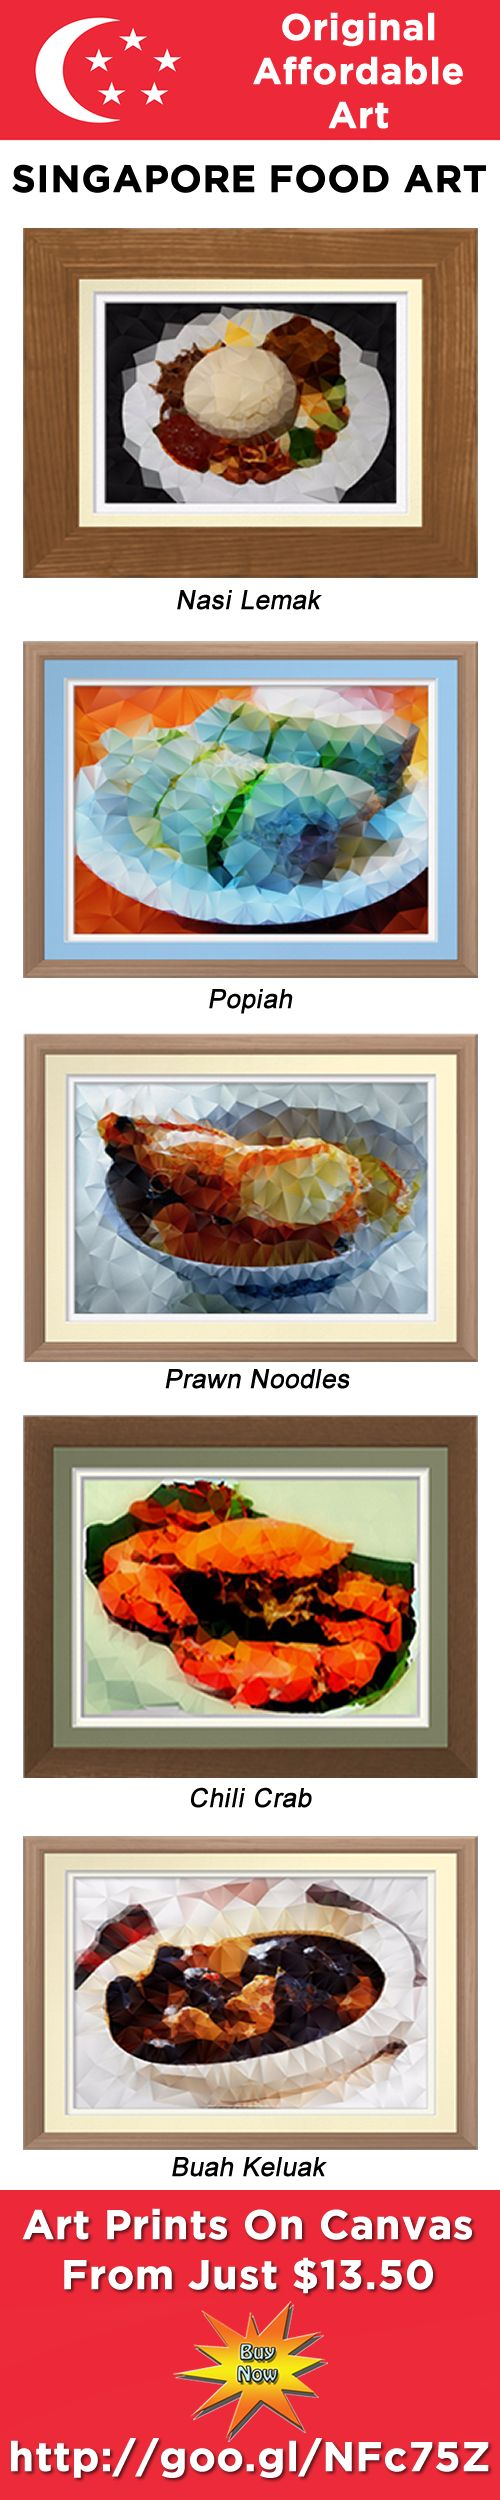 Original & Affordable Singapore Food Art.  Printed on premium canvas. Give or collect something different from your life in, or visit to, Singapore. http://goo.gl/NFc75Z #Singapore #food #Singaporefood #art #artprints